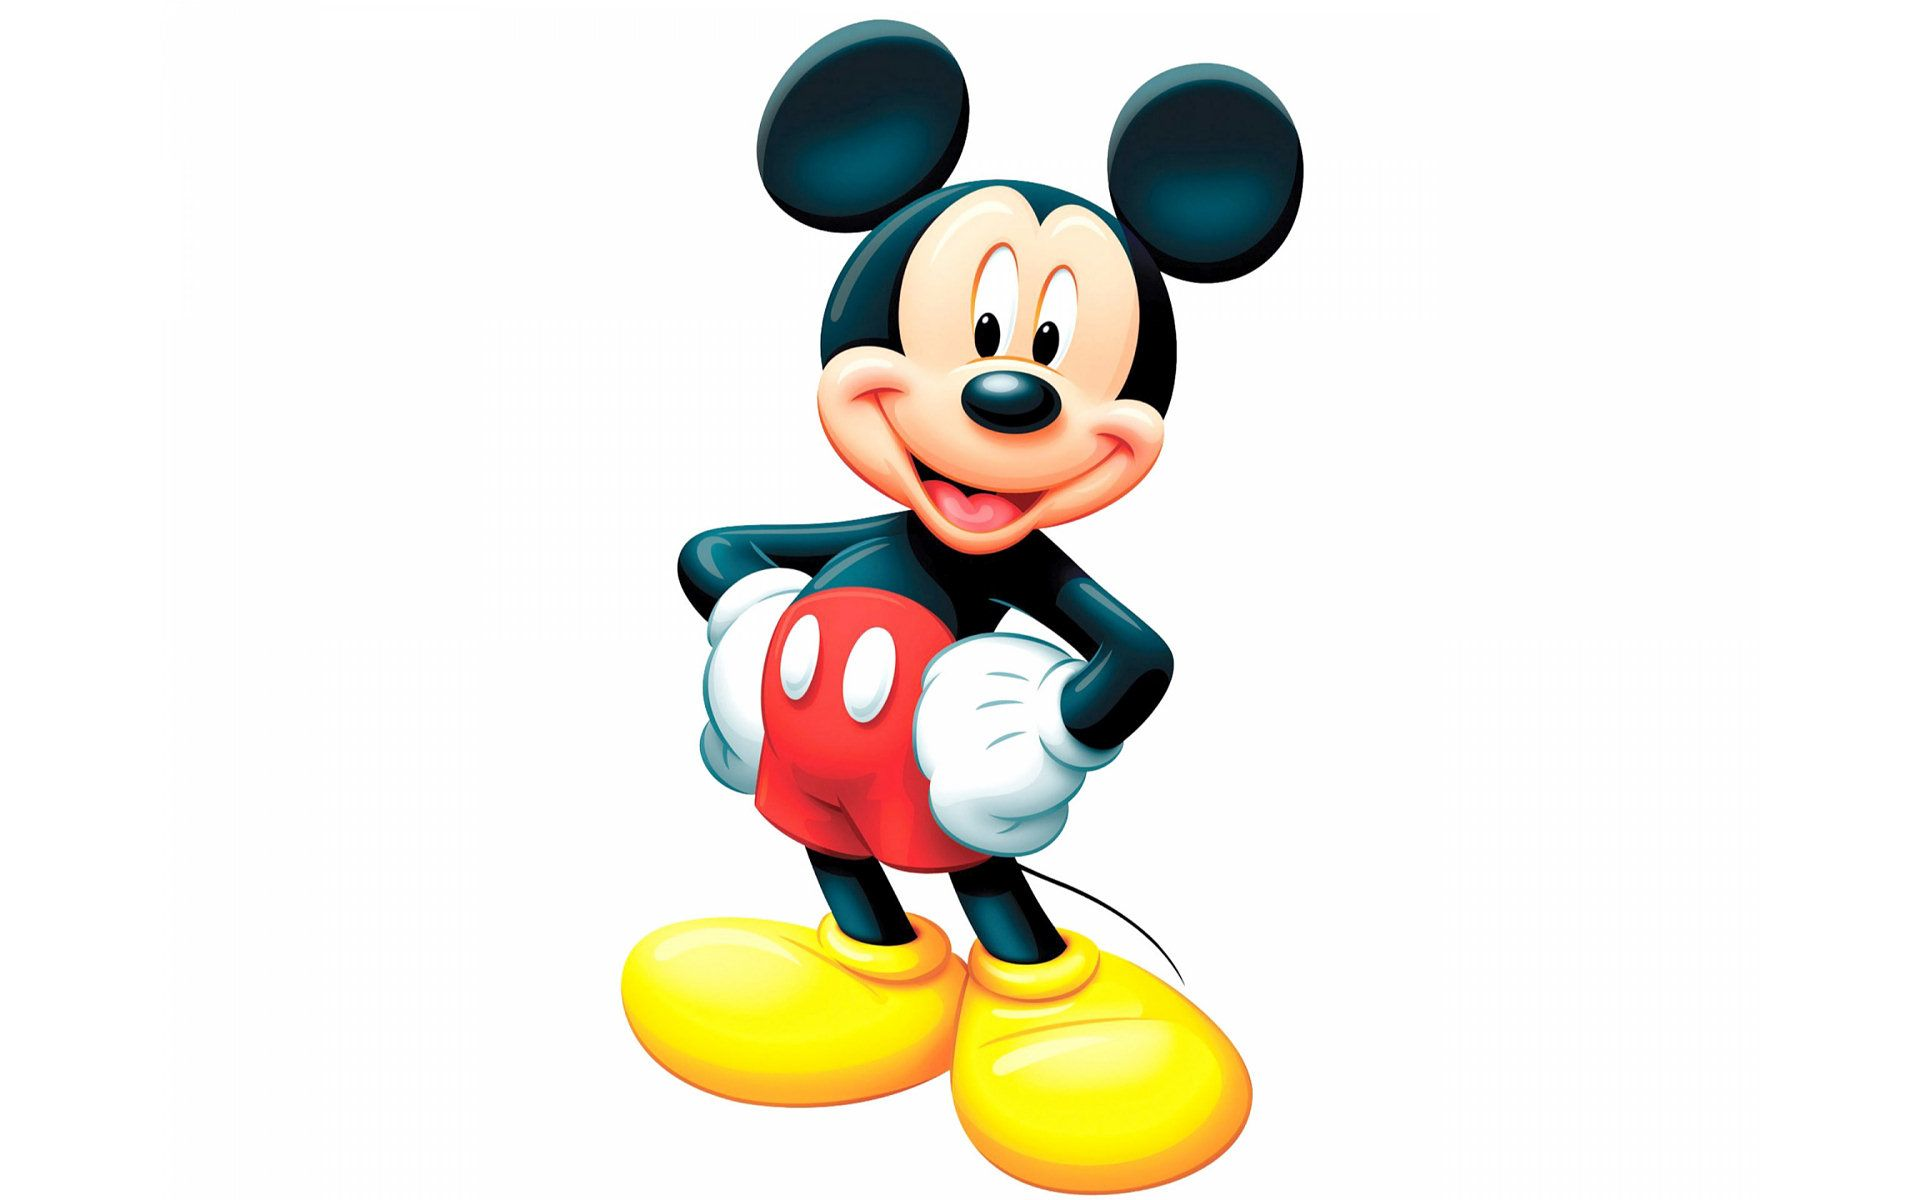 Mickey Mouse Hd Wallpapers Top Free Mickey Mouse Hd Backgrounds Wallpaperaccess